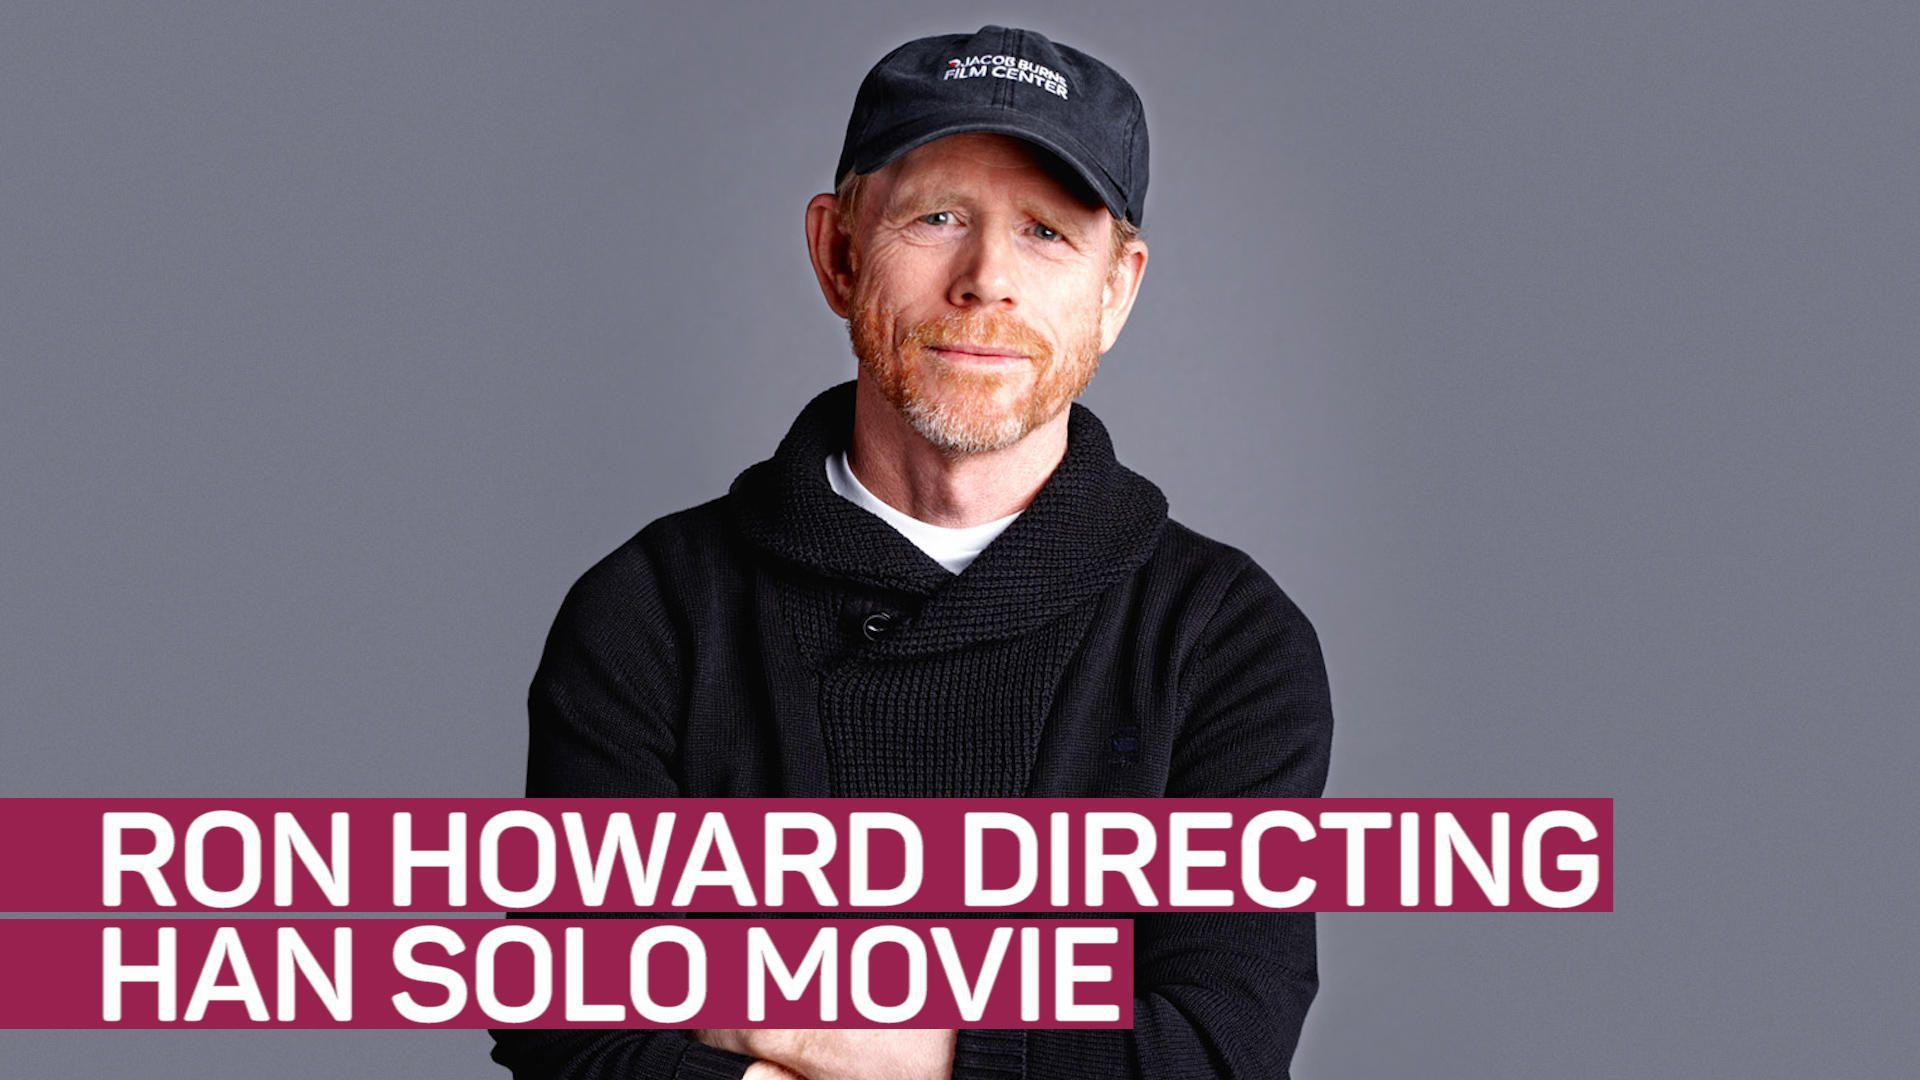 Ron Howard directing Han Solo 'Star Wars' film